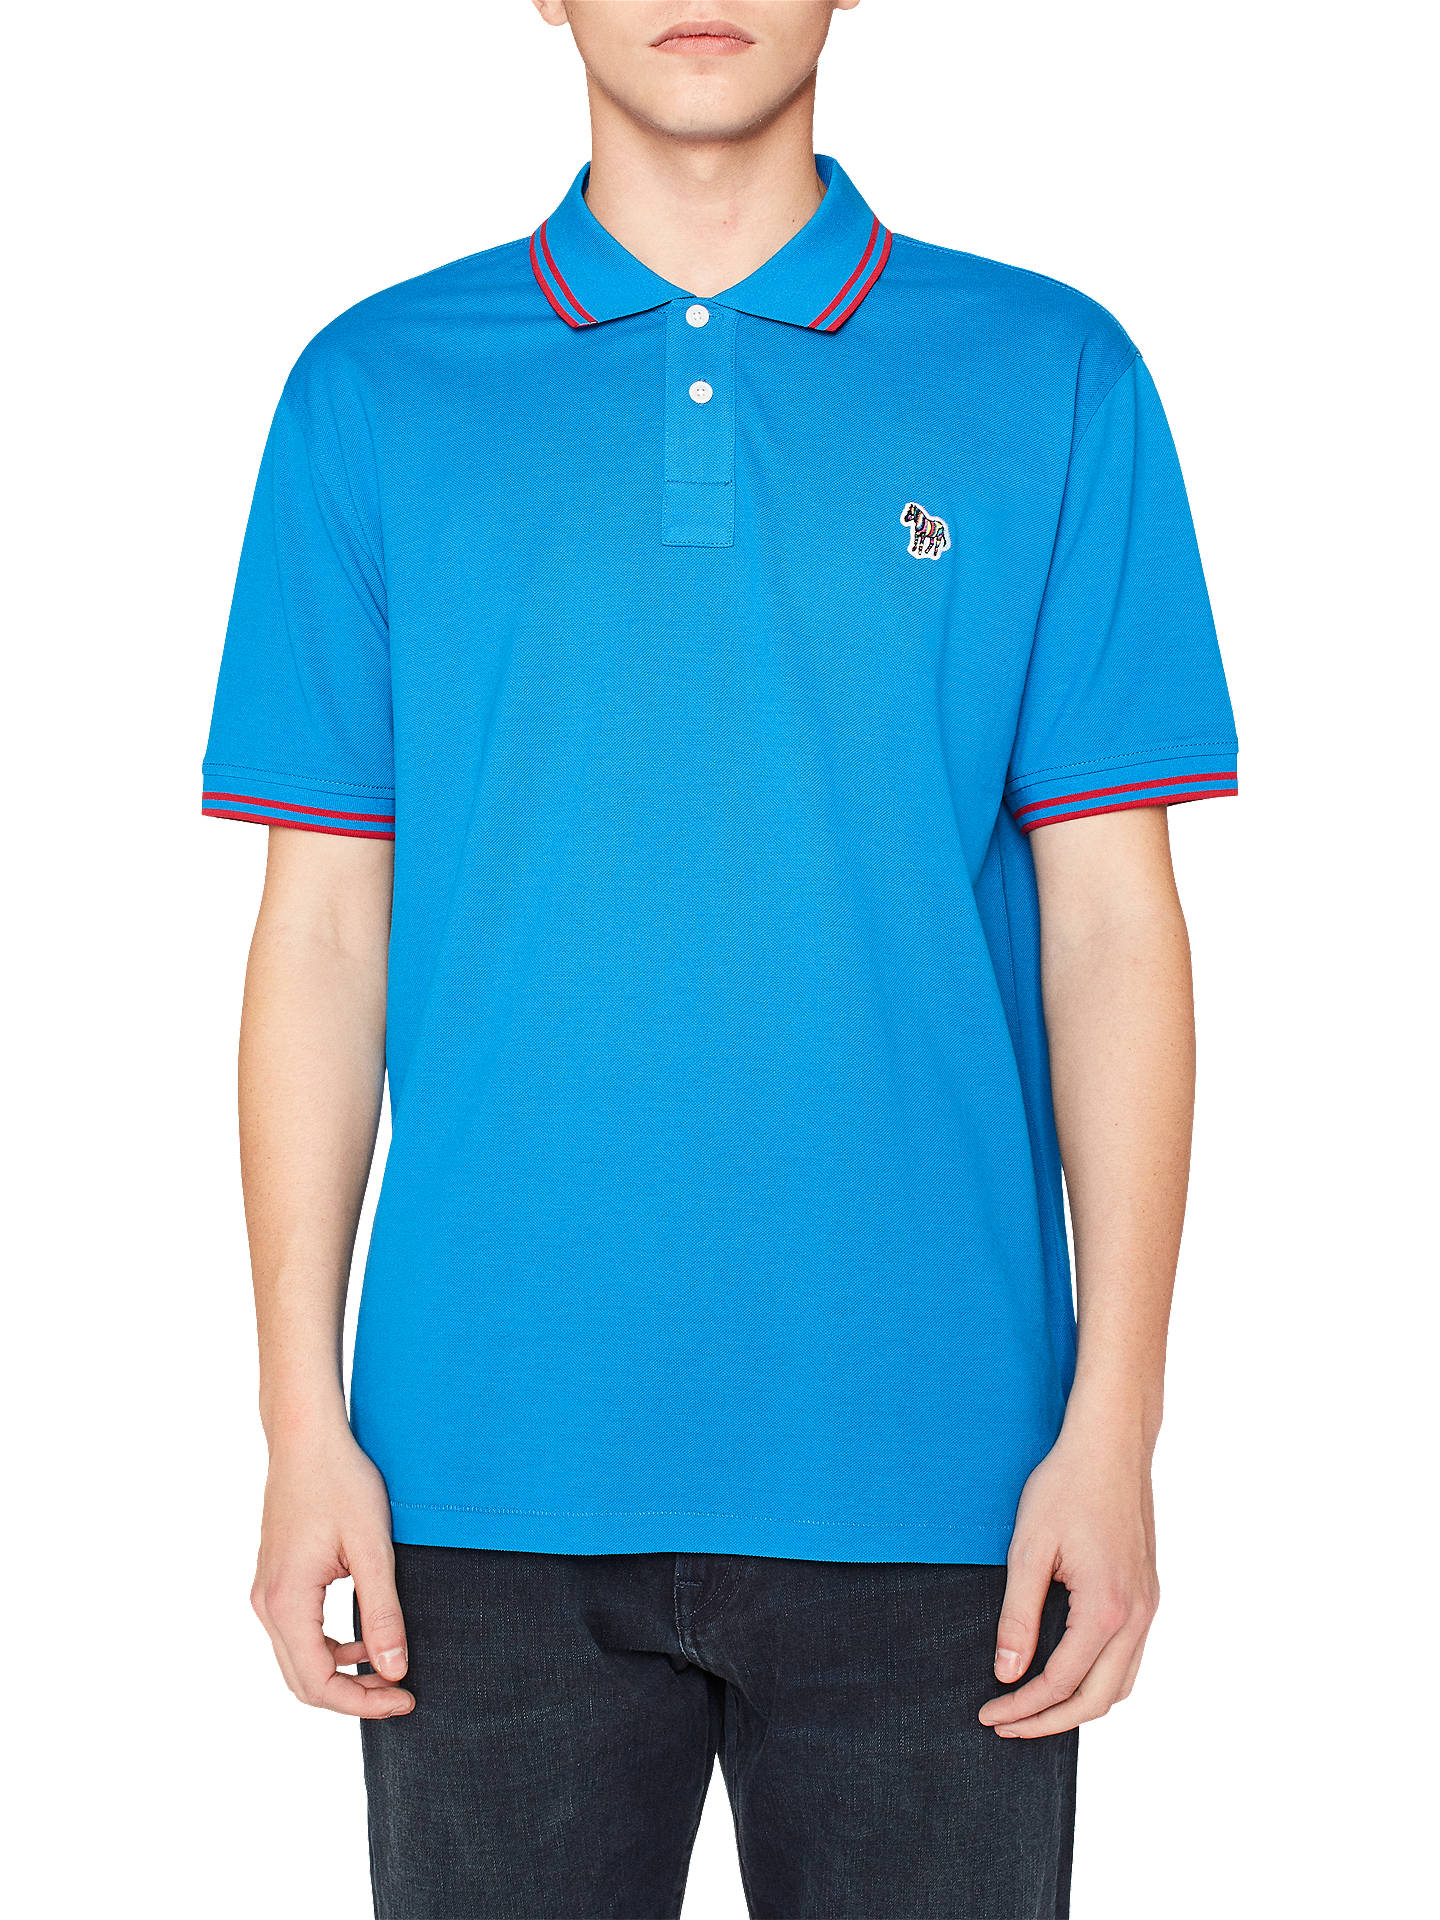 a53da064 Buy PS Paul Smith Twin Tipped Polo Shirt, Blue, S Online at johnlewis.